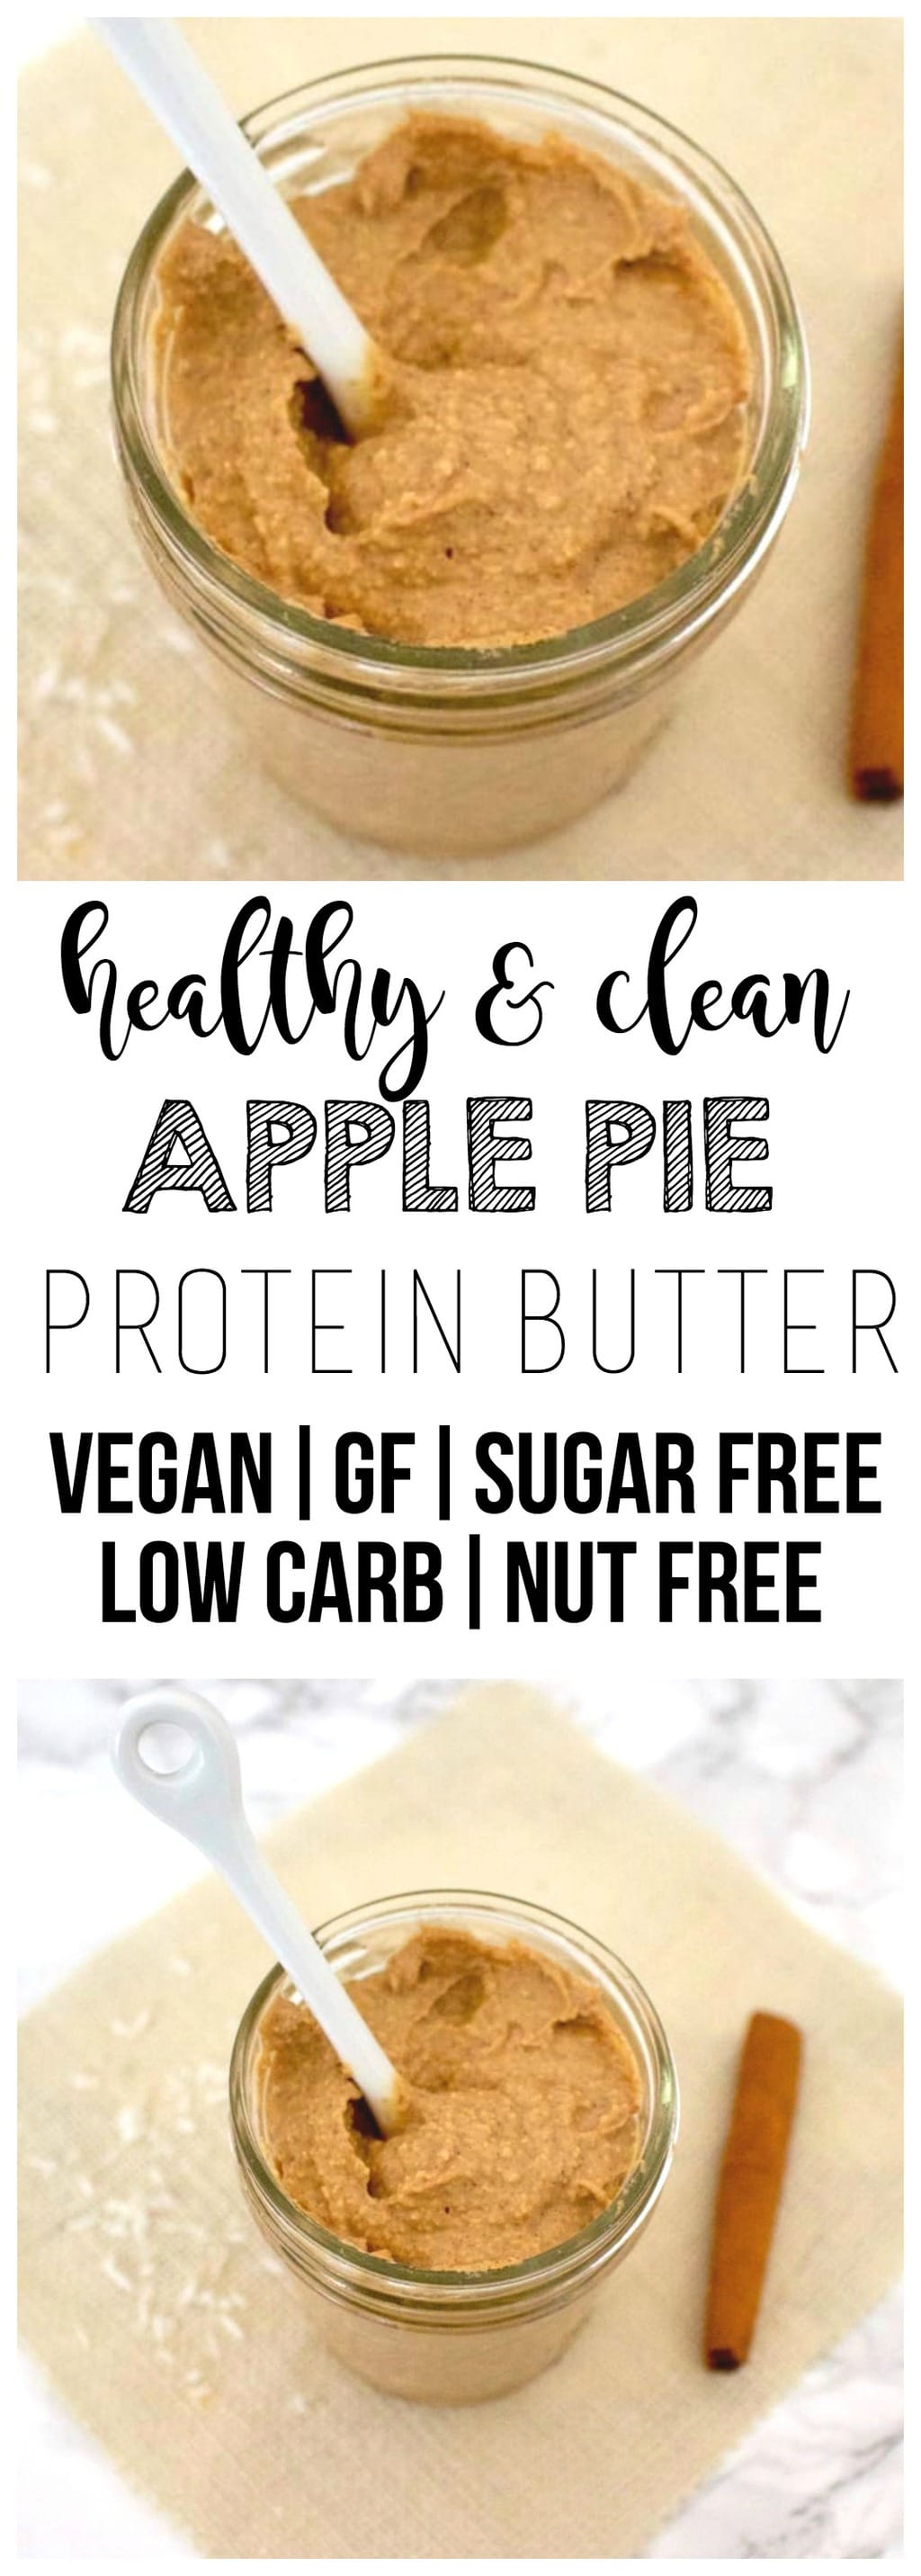 This Apple Pie Protein Butter is so delicious! It tastes like apple pie in a spreadable, peanut-butter-like form. But totally nut-free! Also vegan, gluten-free, sugar-free, low-carb, low-fat & low-calorie - only 66 calories per serving!